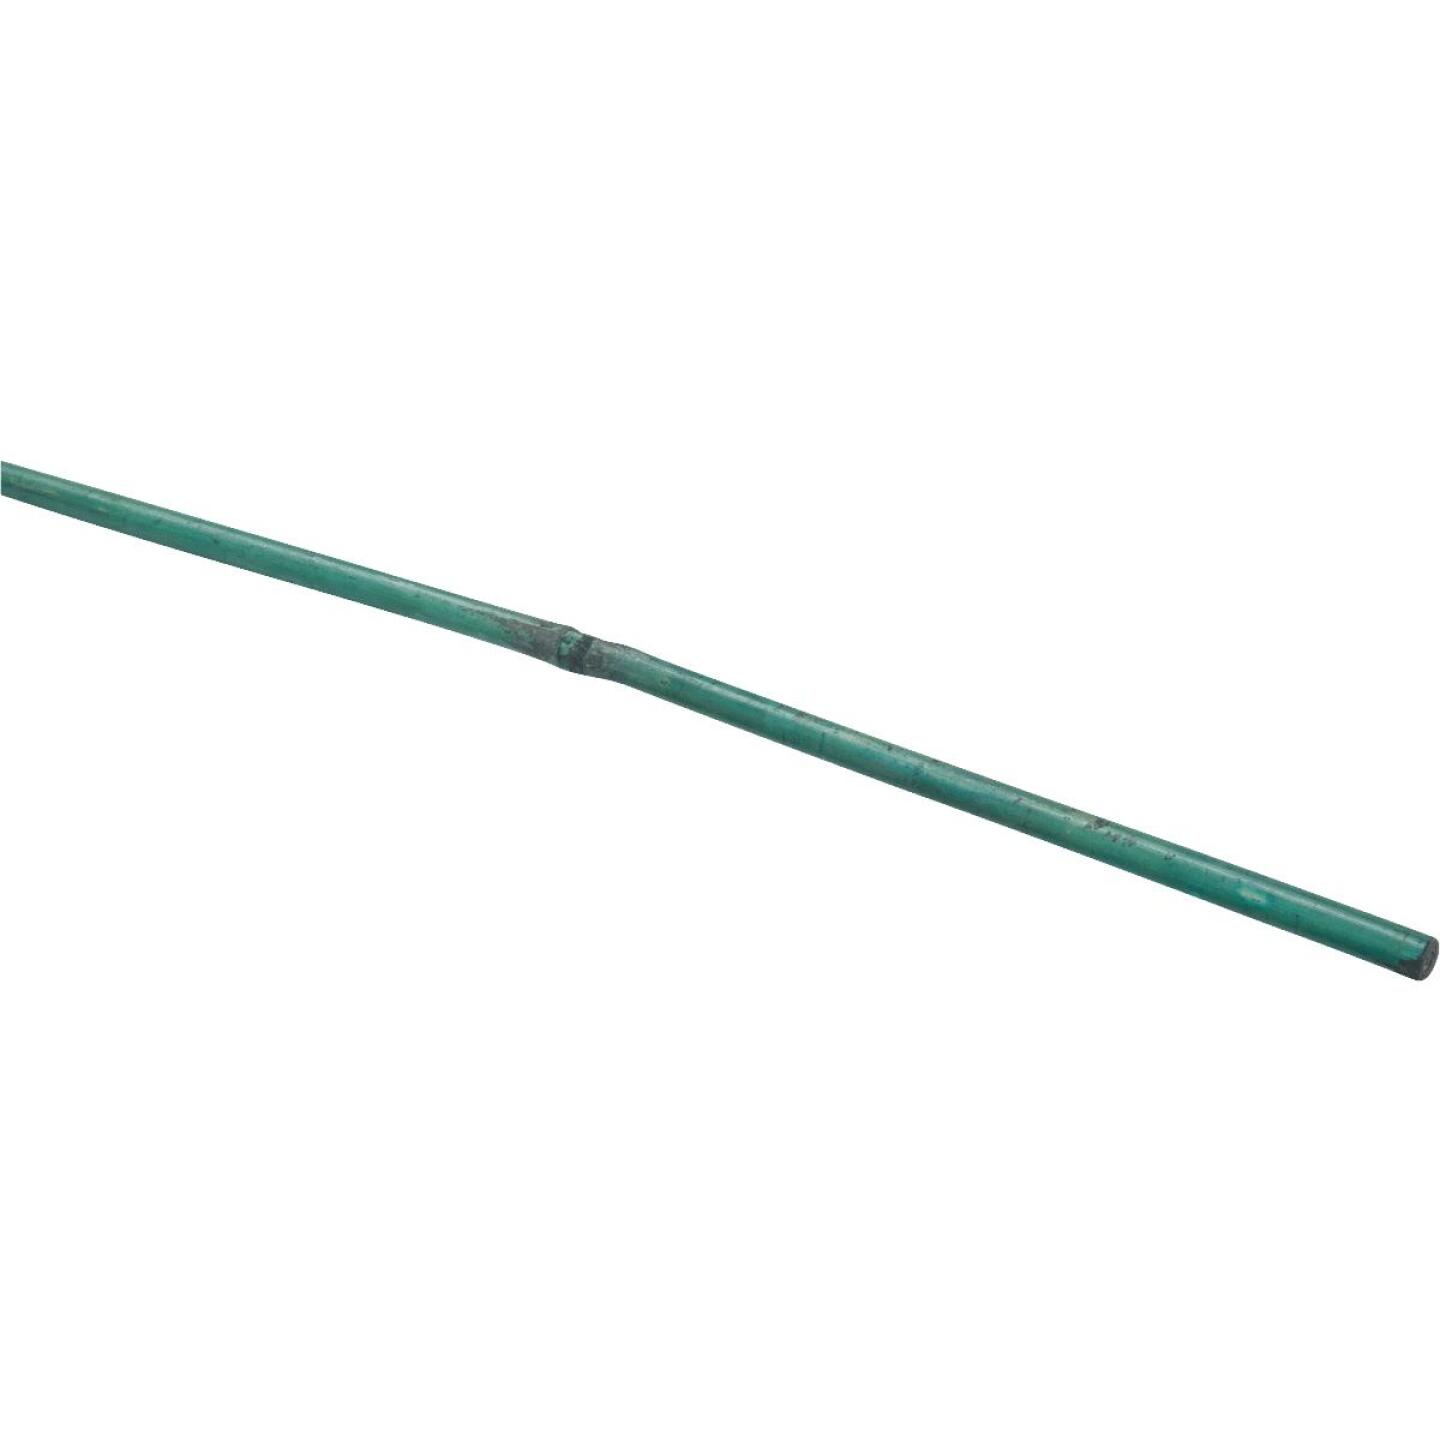 Bond 4 Ft. Green Bamboo Plant Stakes (25-Pack) Image 19